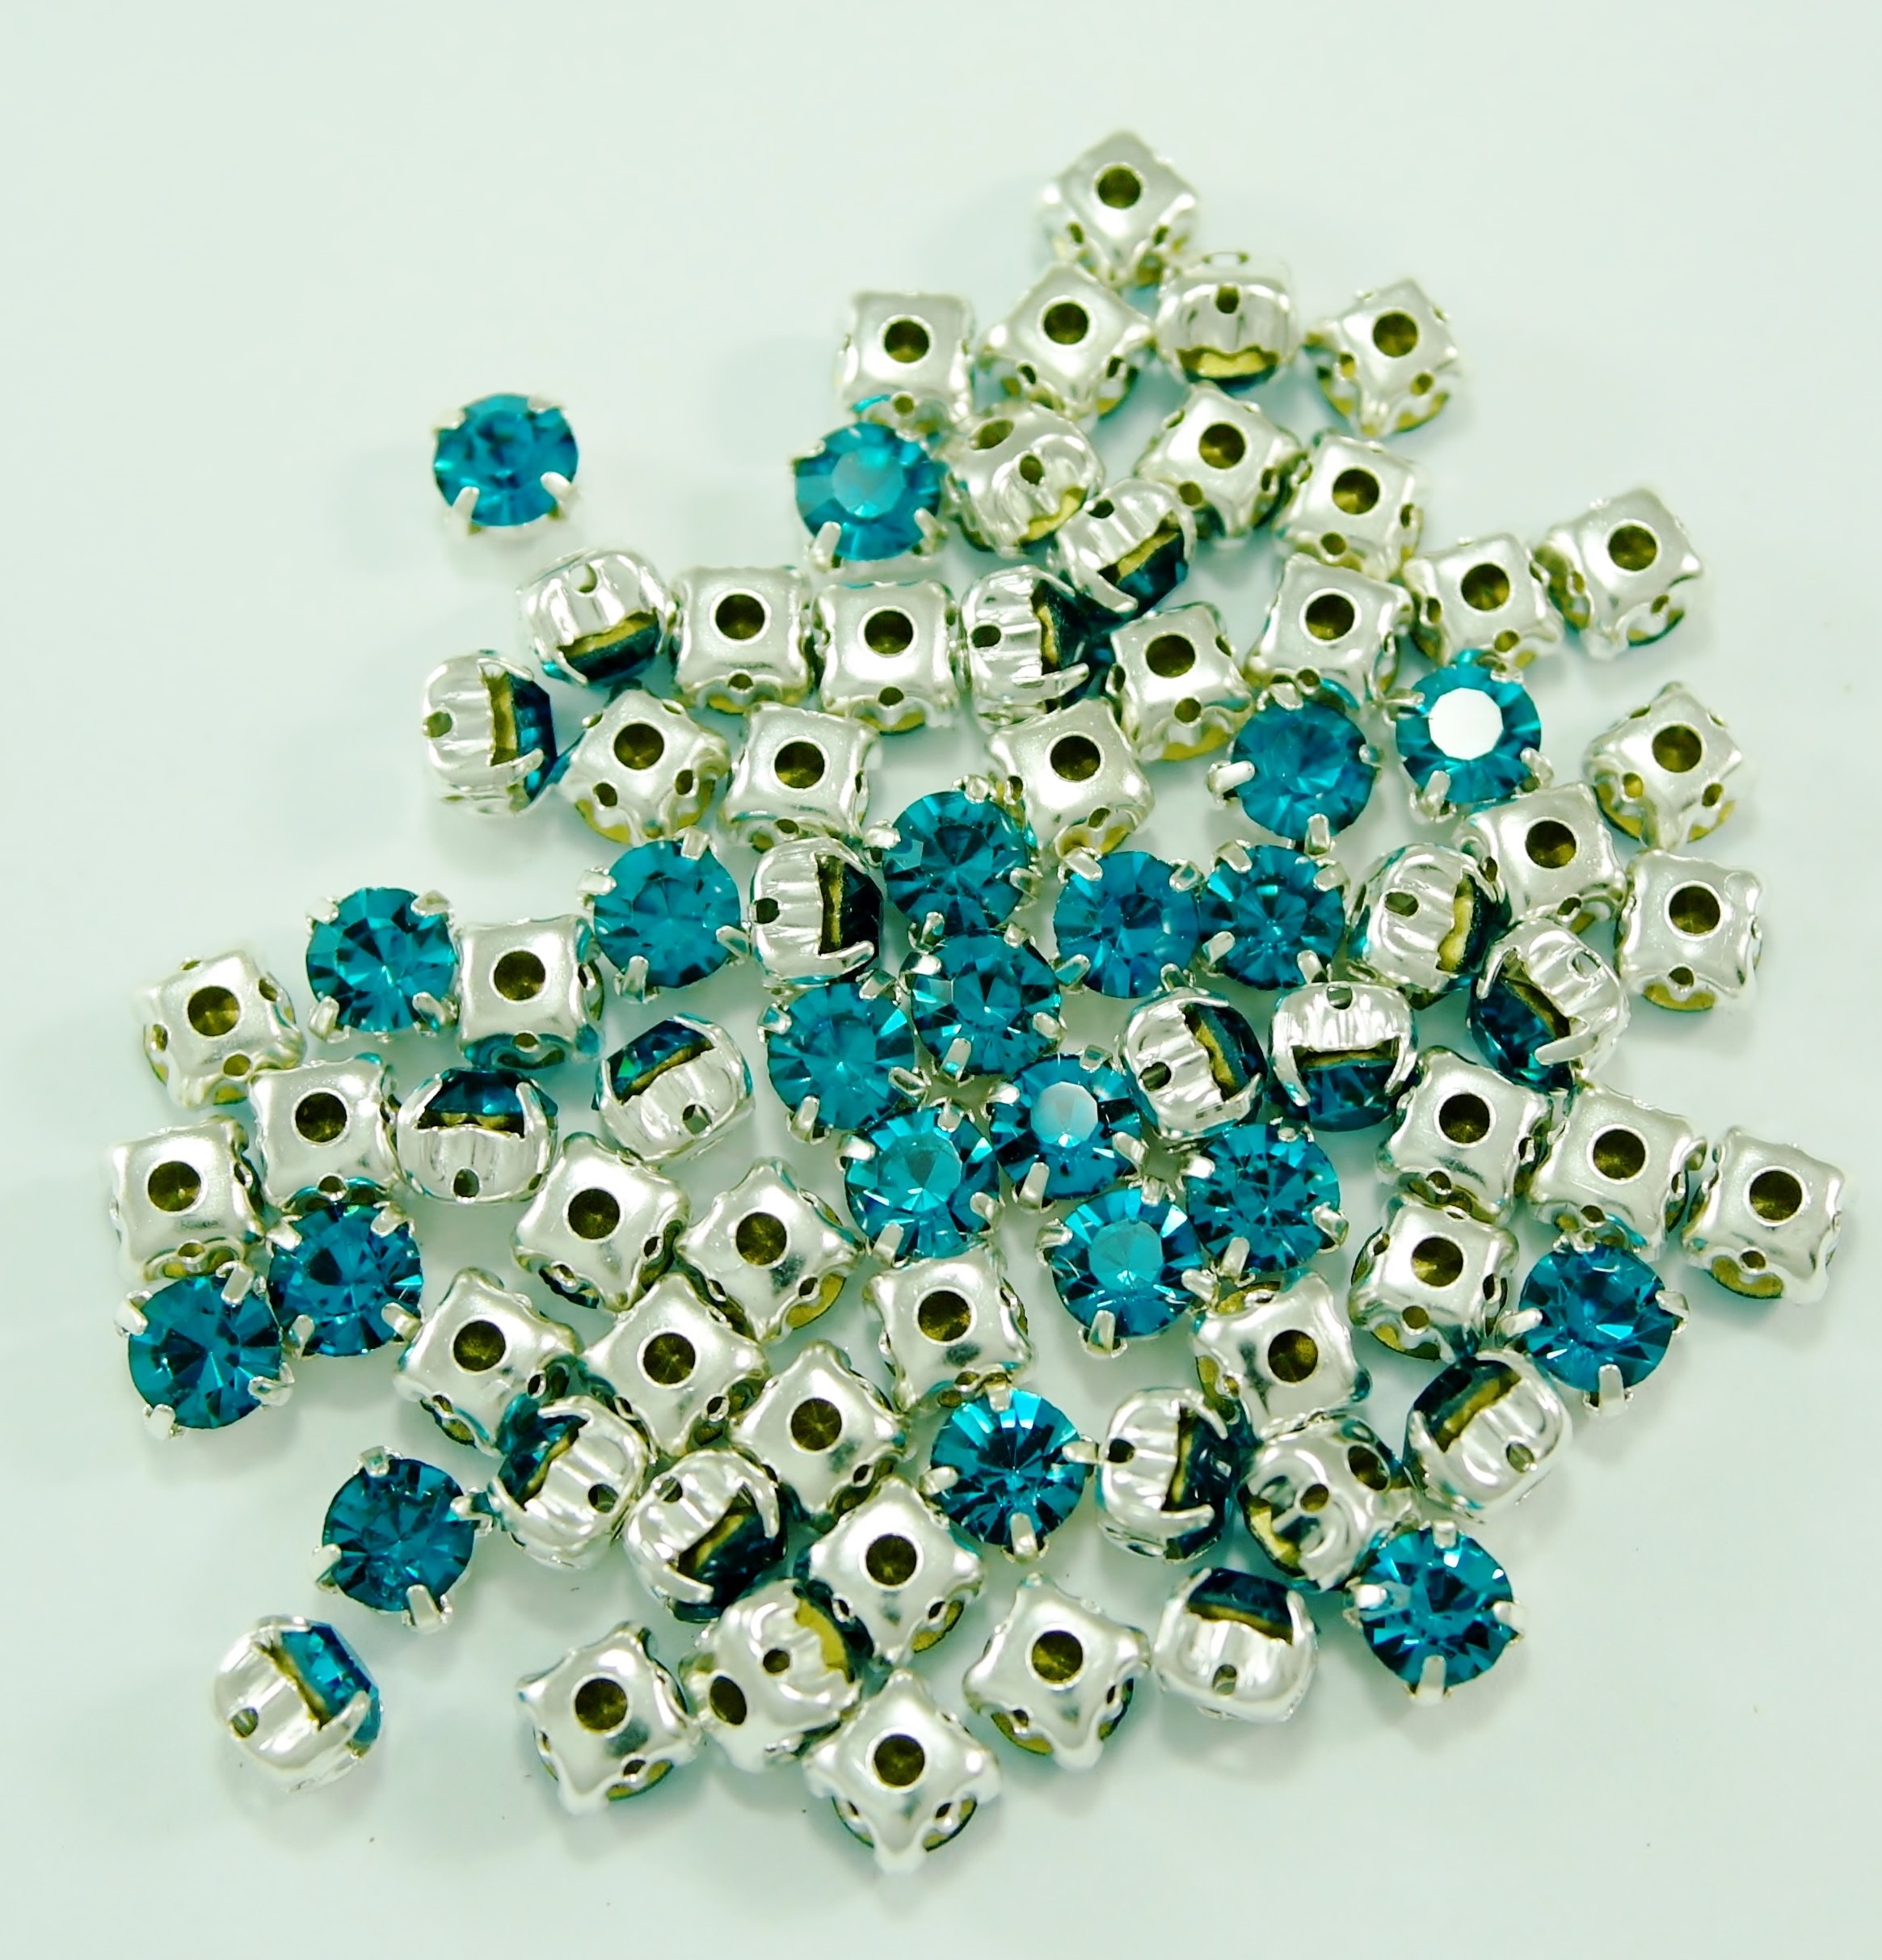 SS28 montees - Blue Zircon B6 ( 200 pcs )